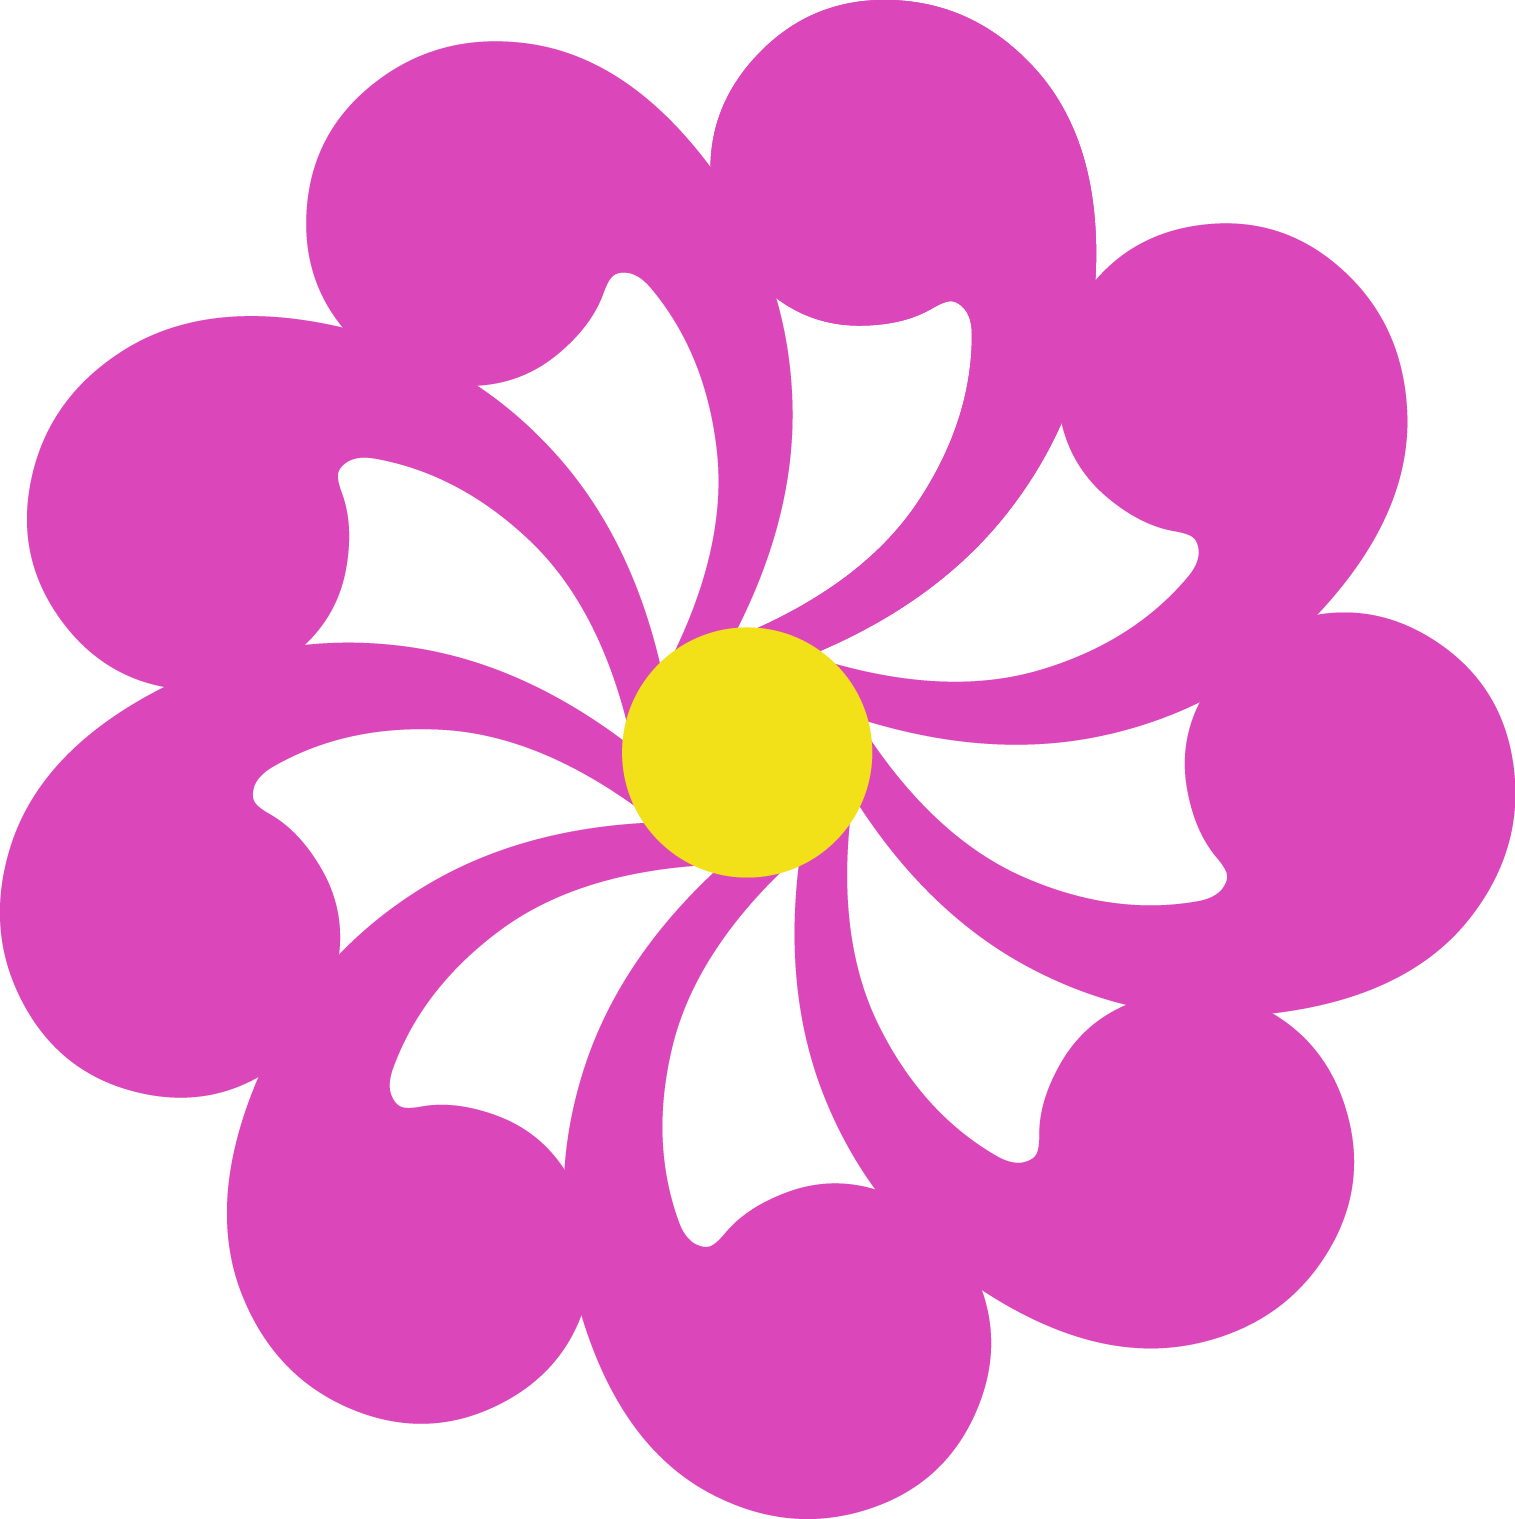 flower-01.png